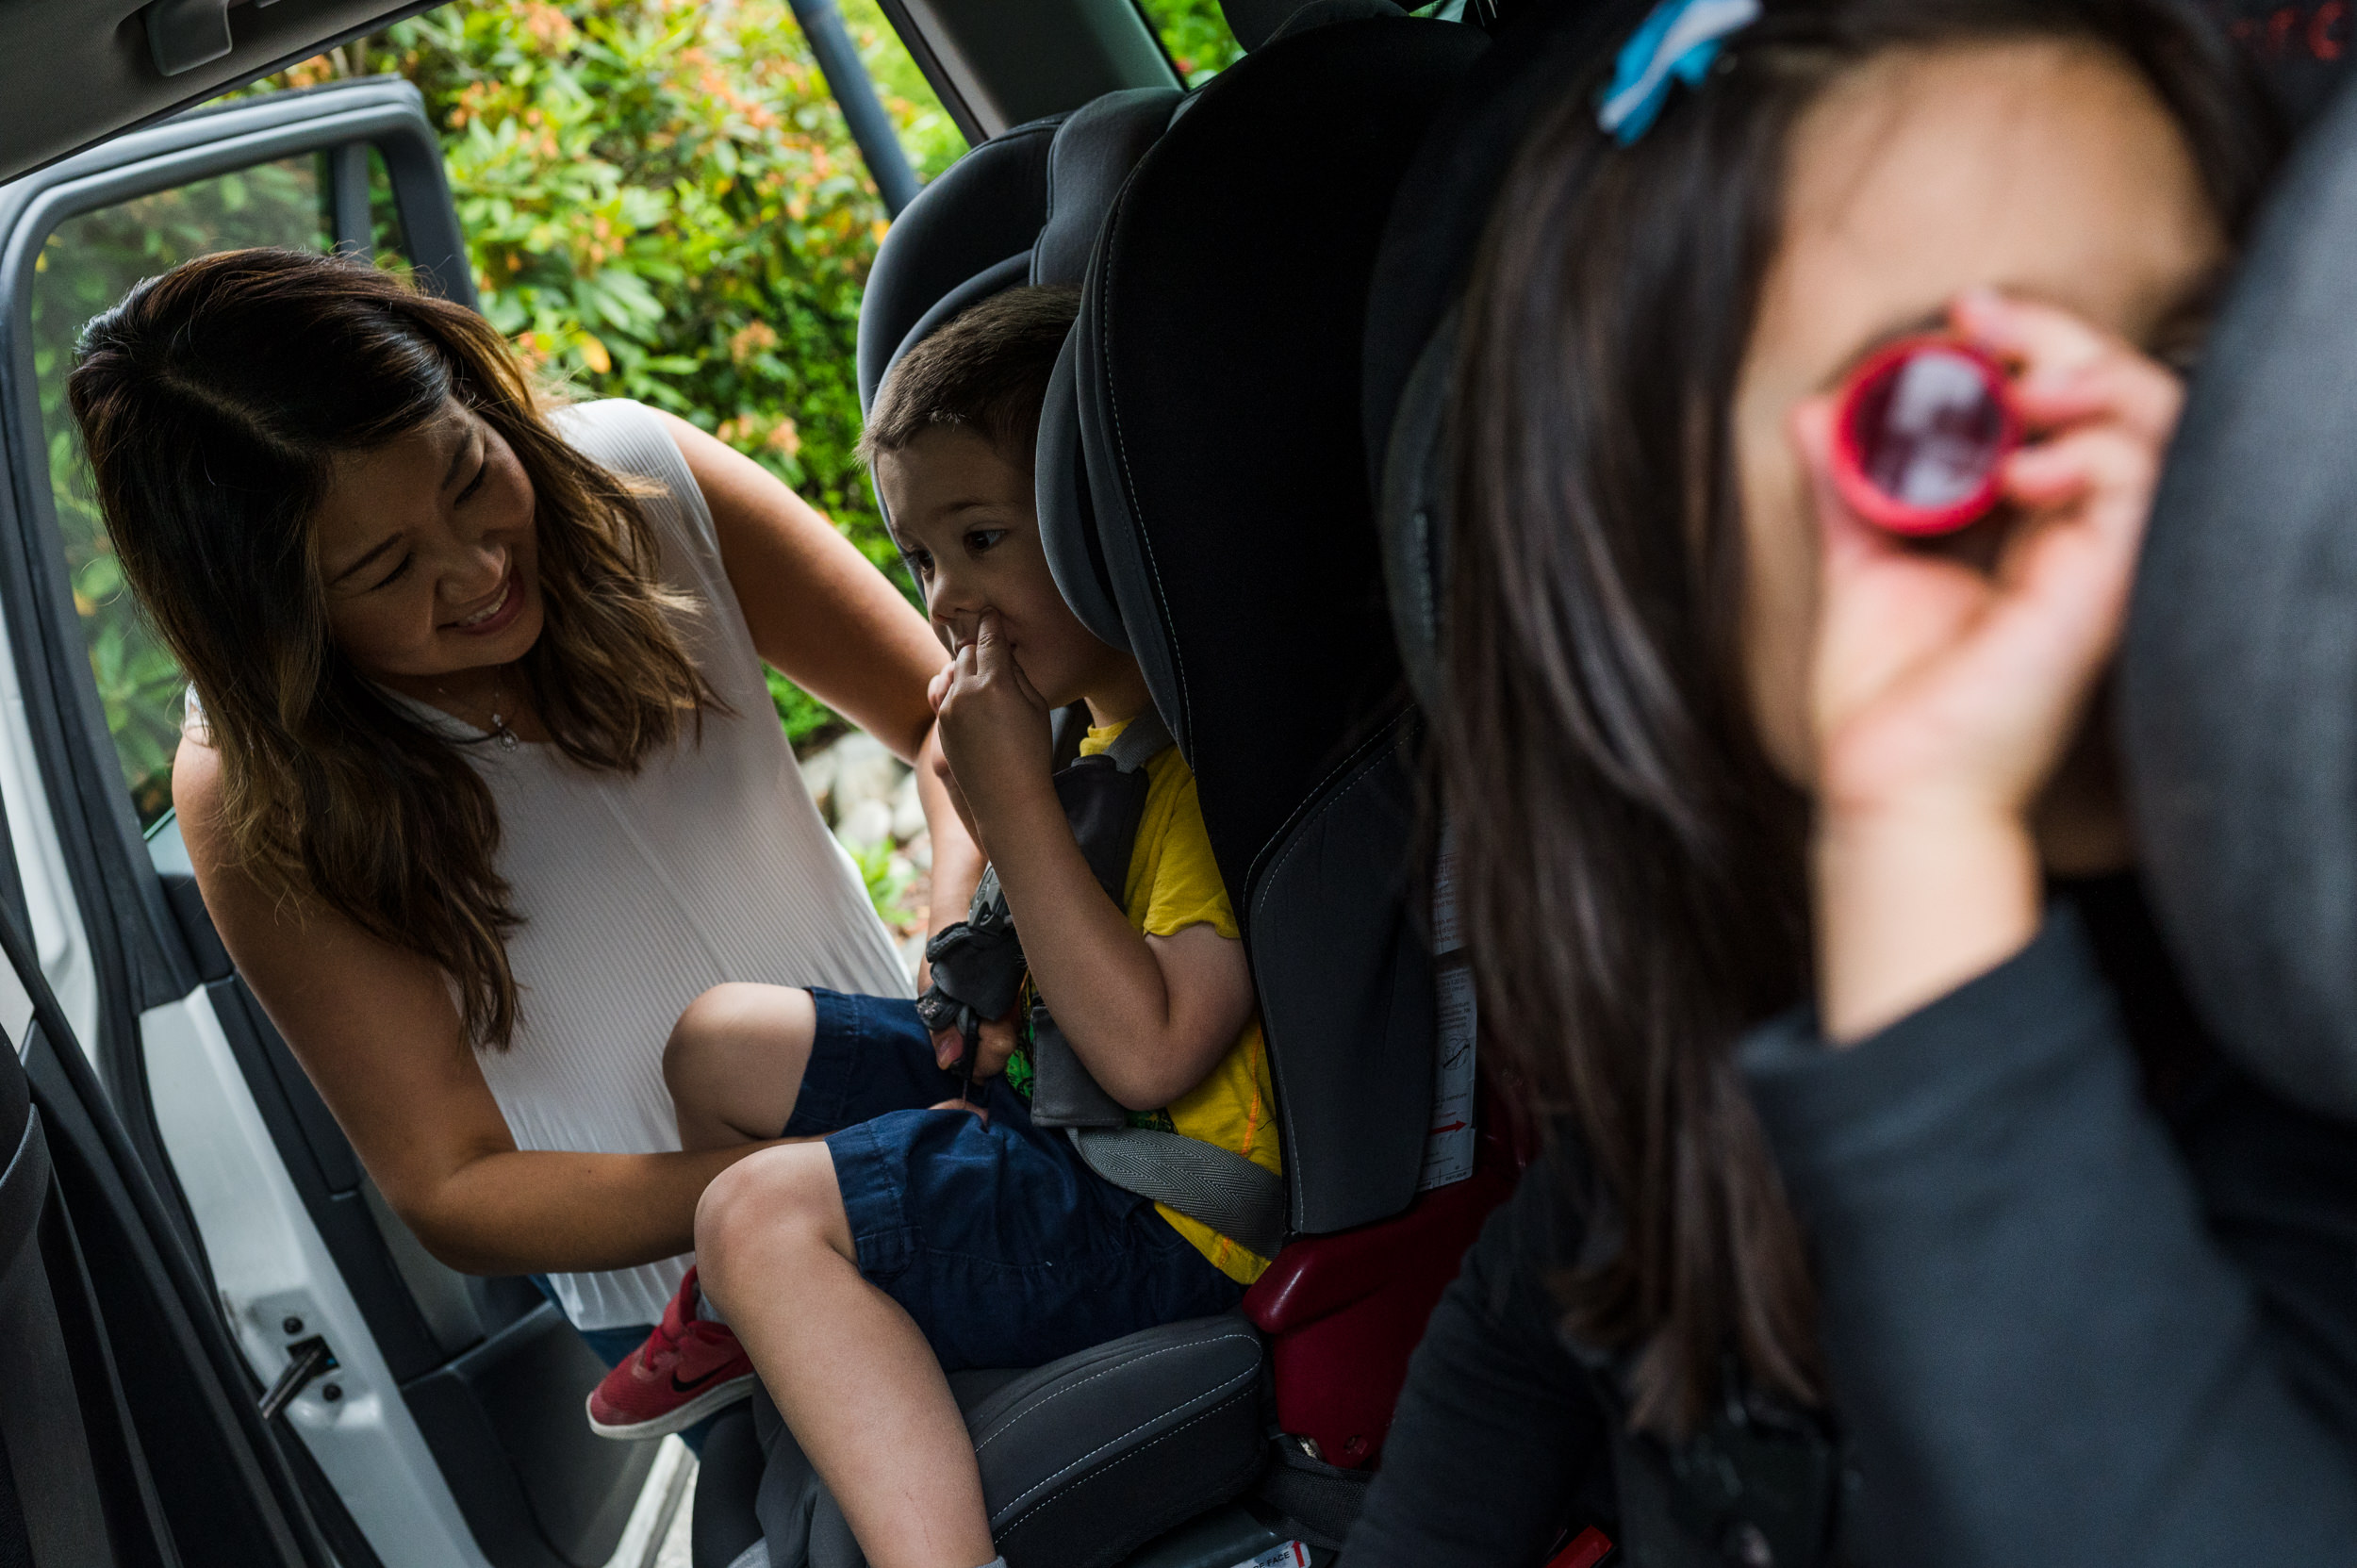 A mother buckles in her son into his carseat while his sister looks out the window with a toy kaleidoscope.